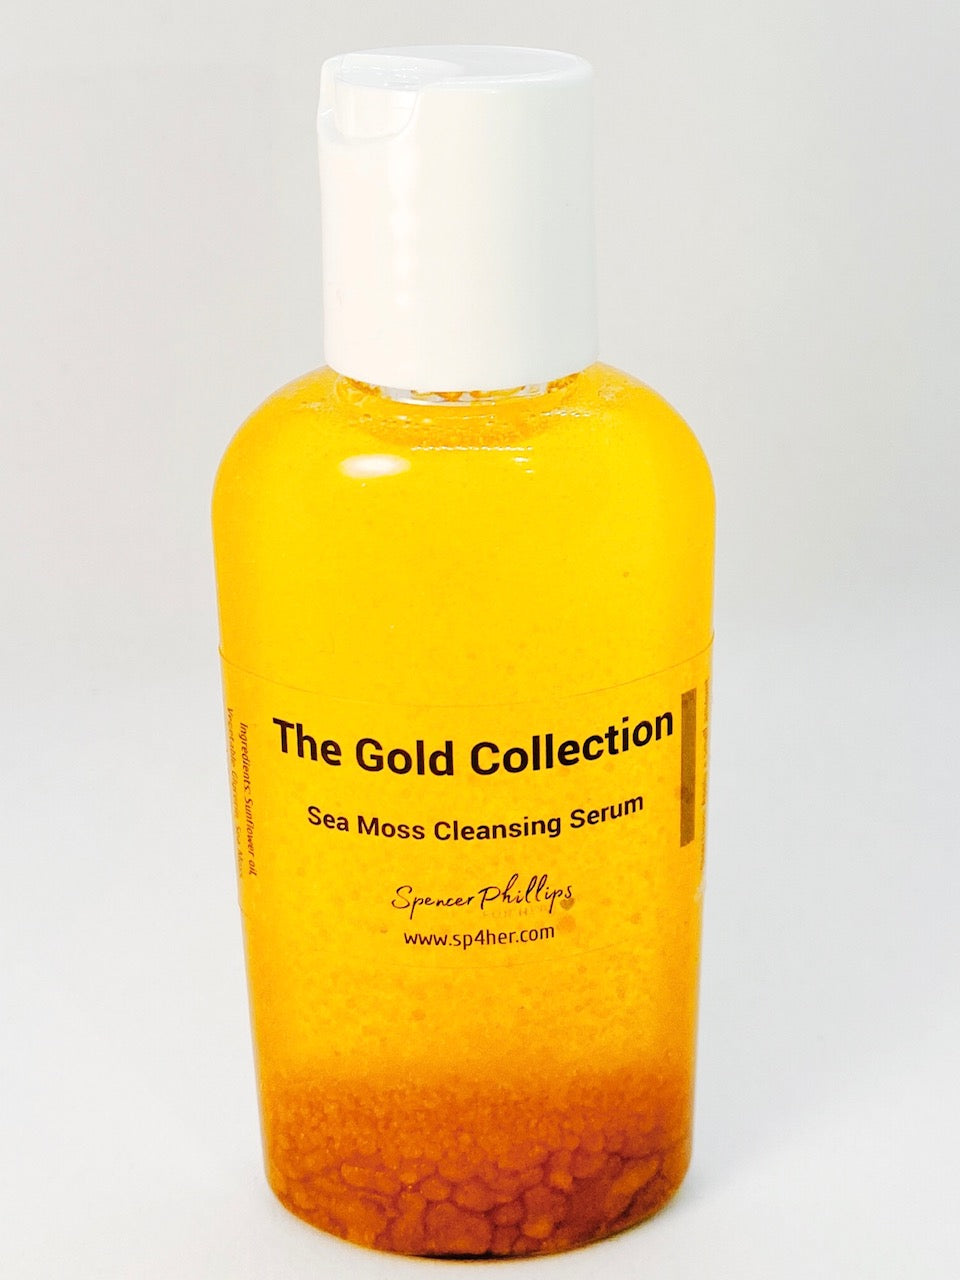 Golden Sea Moss Cleansing Serum